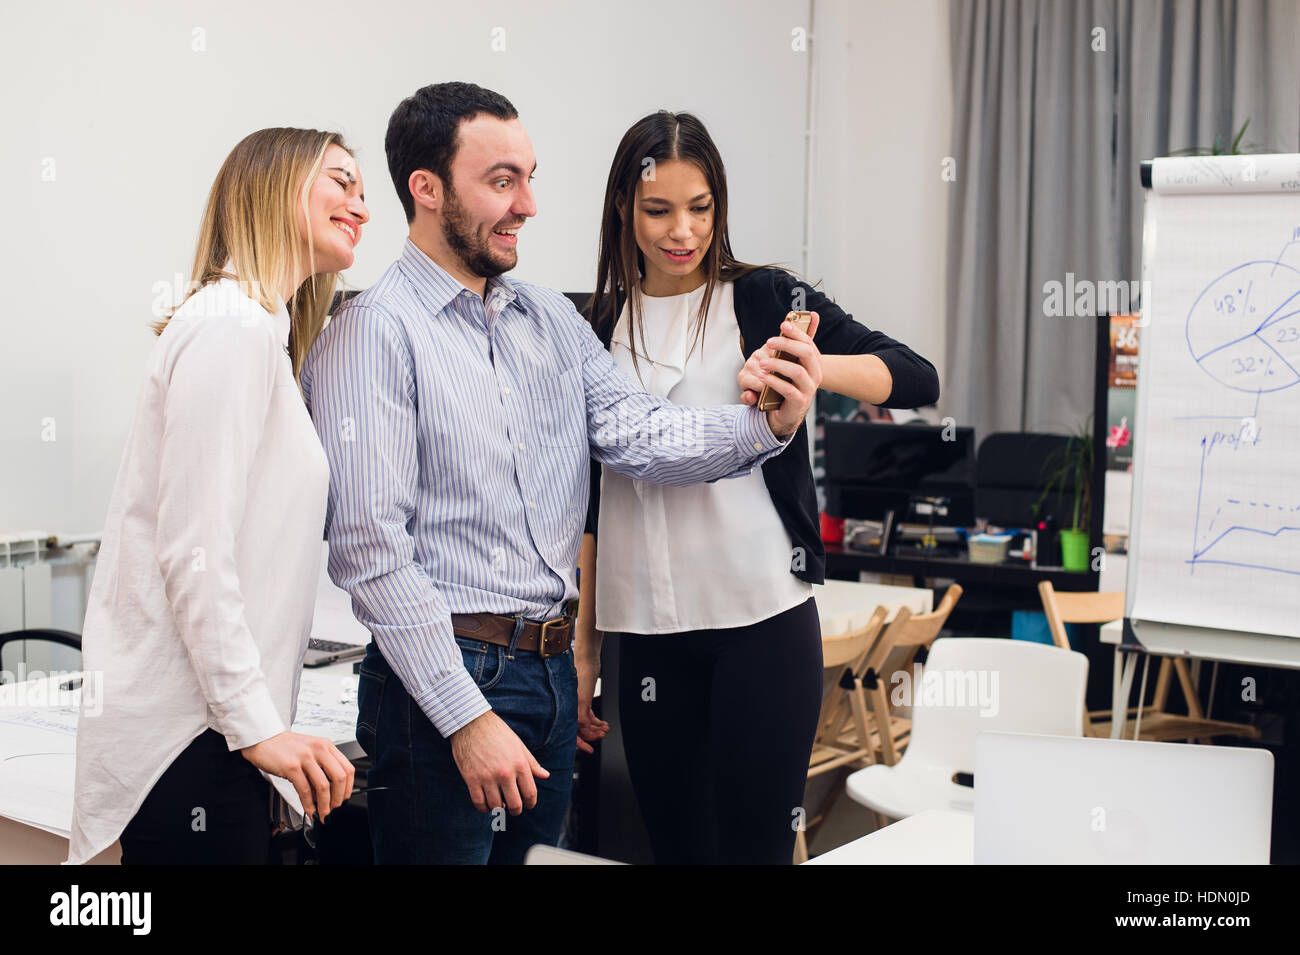 Group of four diverse cheerful co-workers taking self portrait and making funny gestures with hands at small office Stock Photo